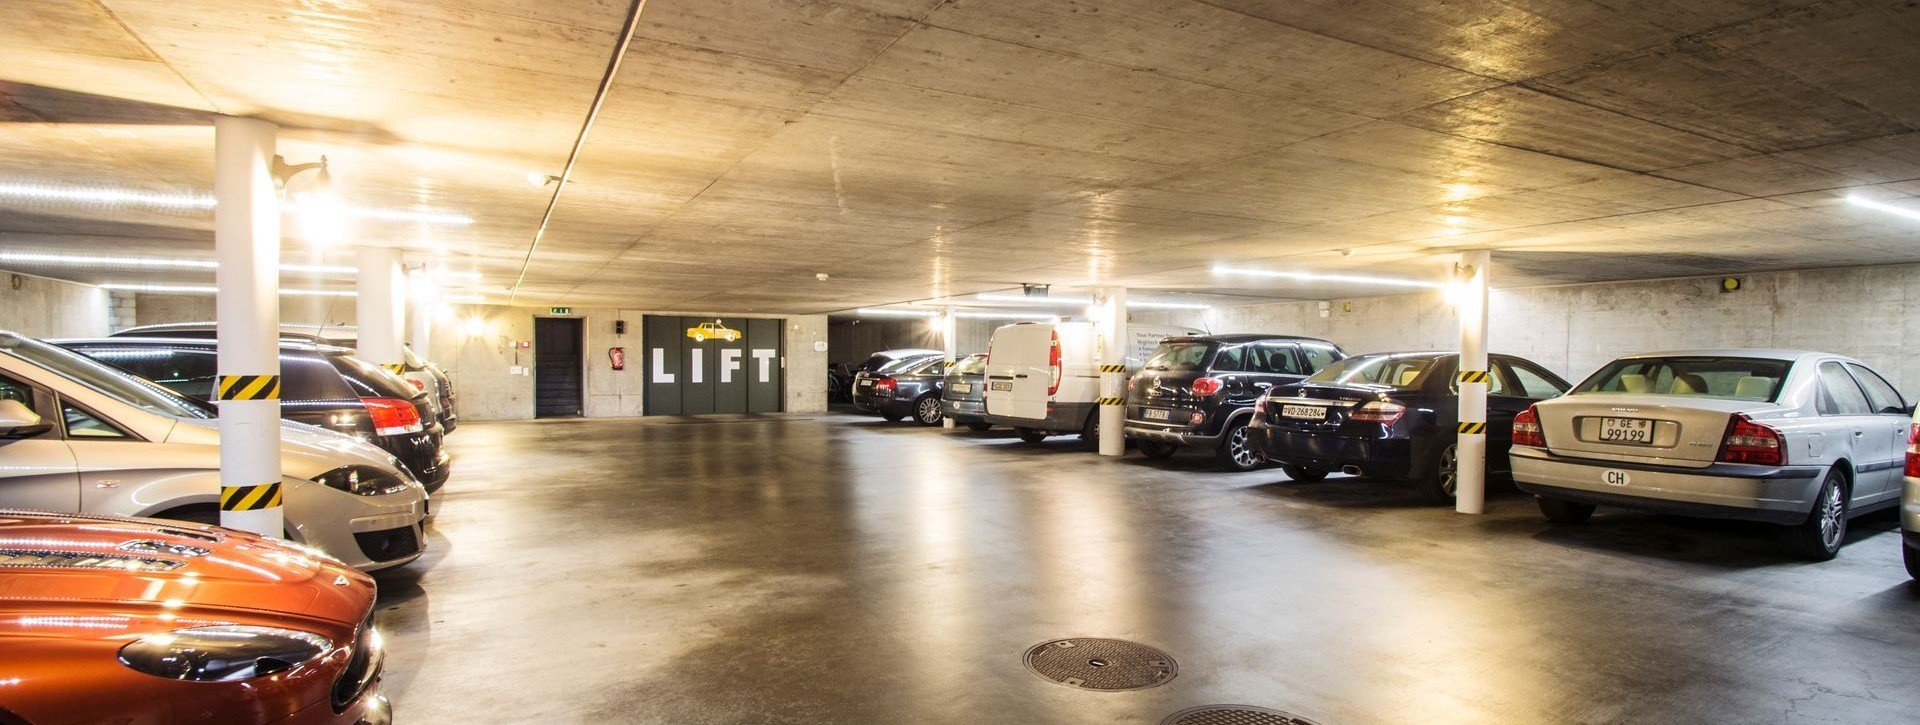 Cars in the hotels underground car park